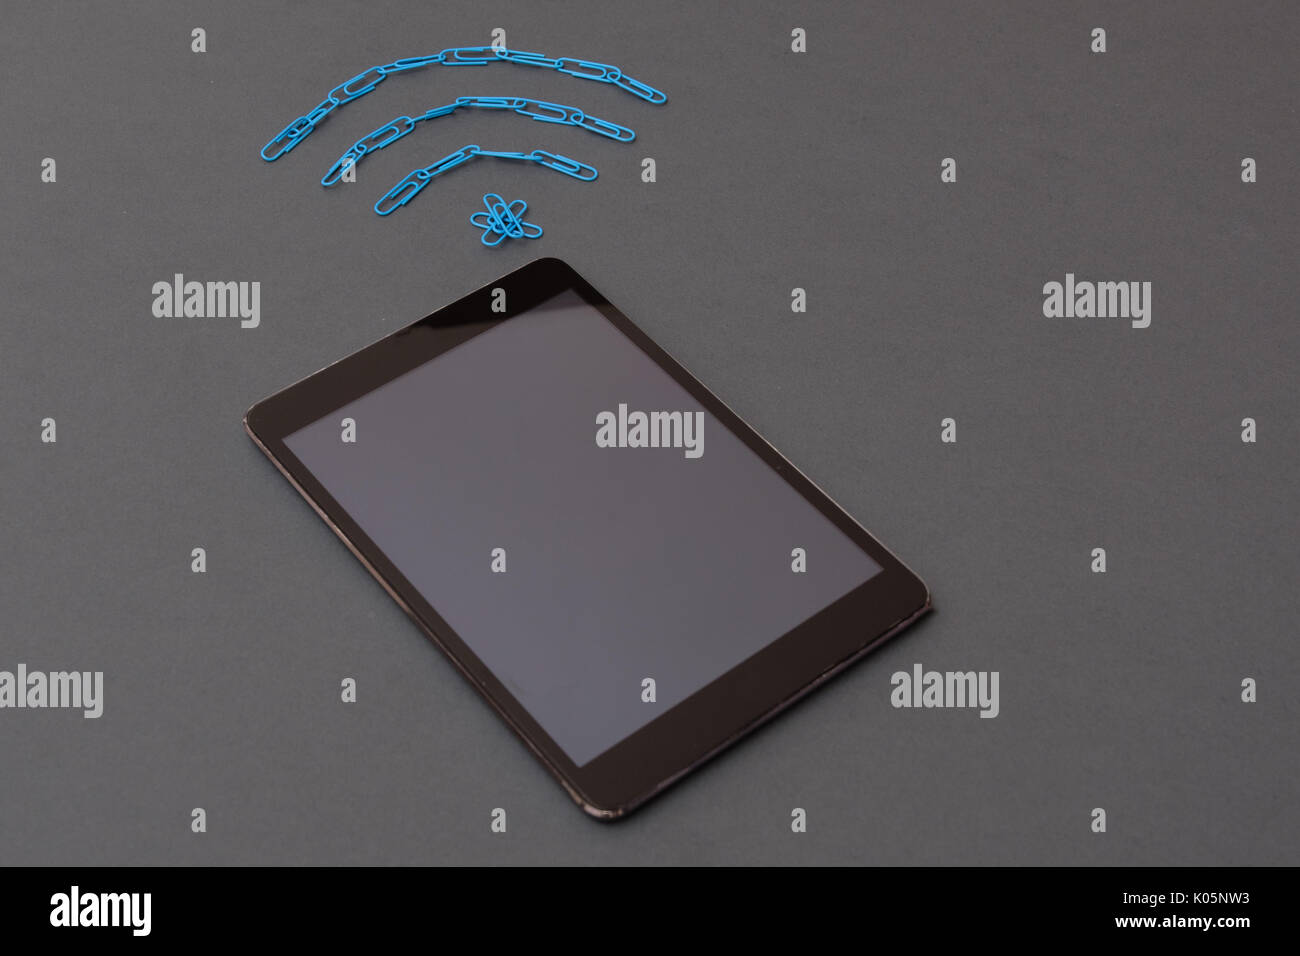 Wireless signal symbol made of paperclips and digital tablet - Stock Image